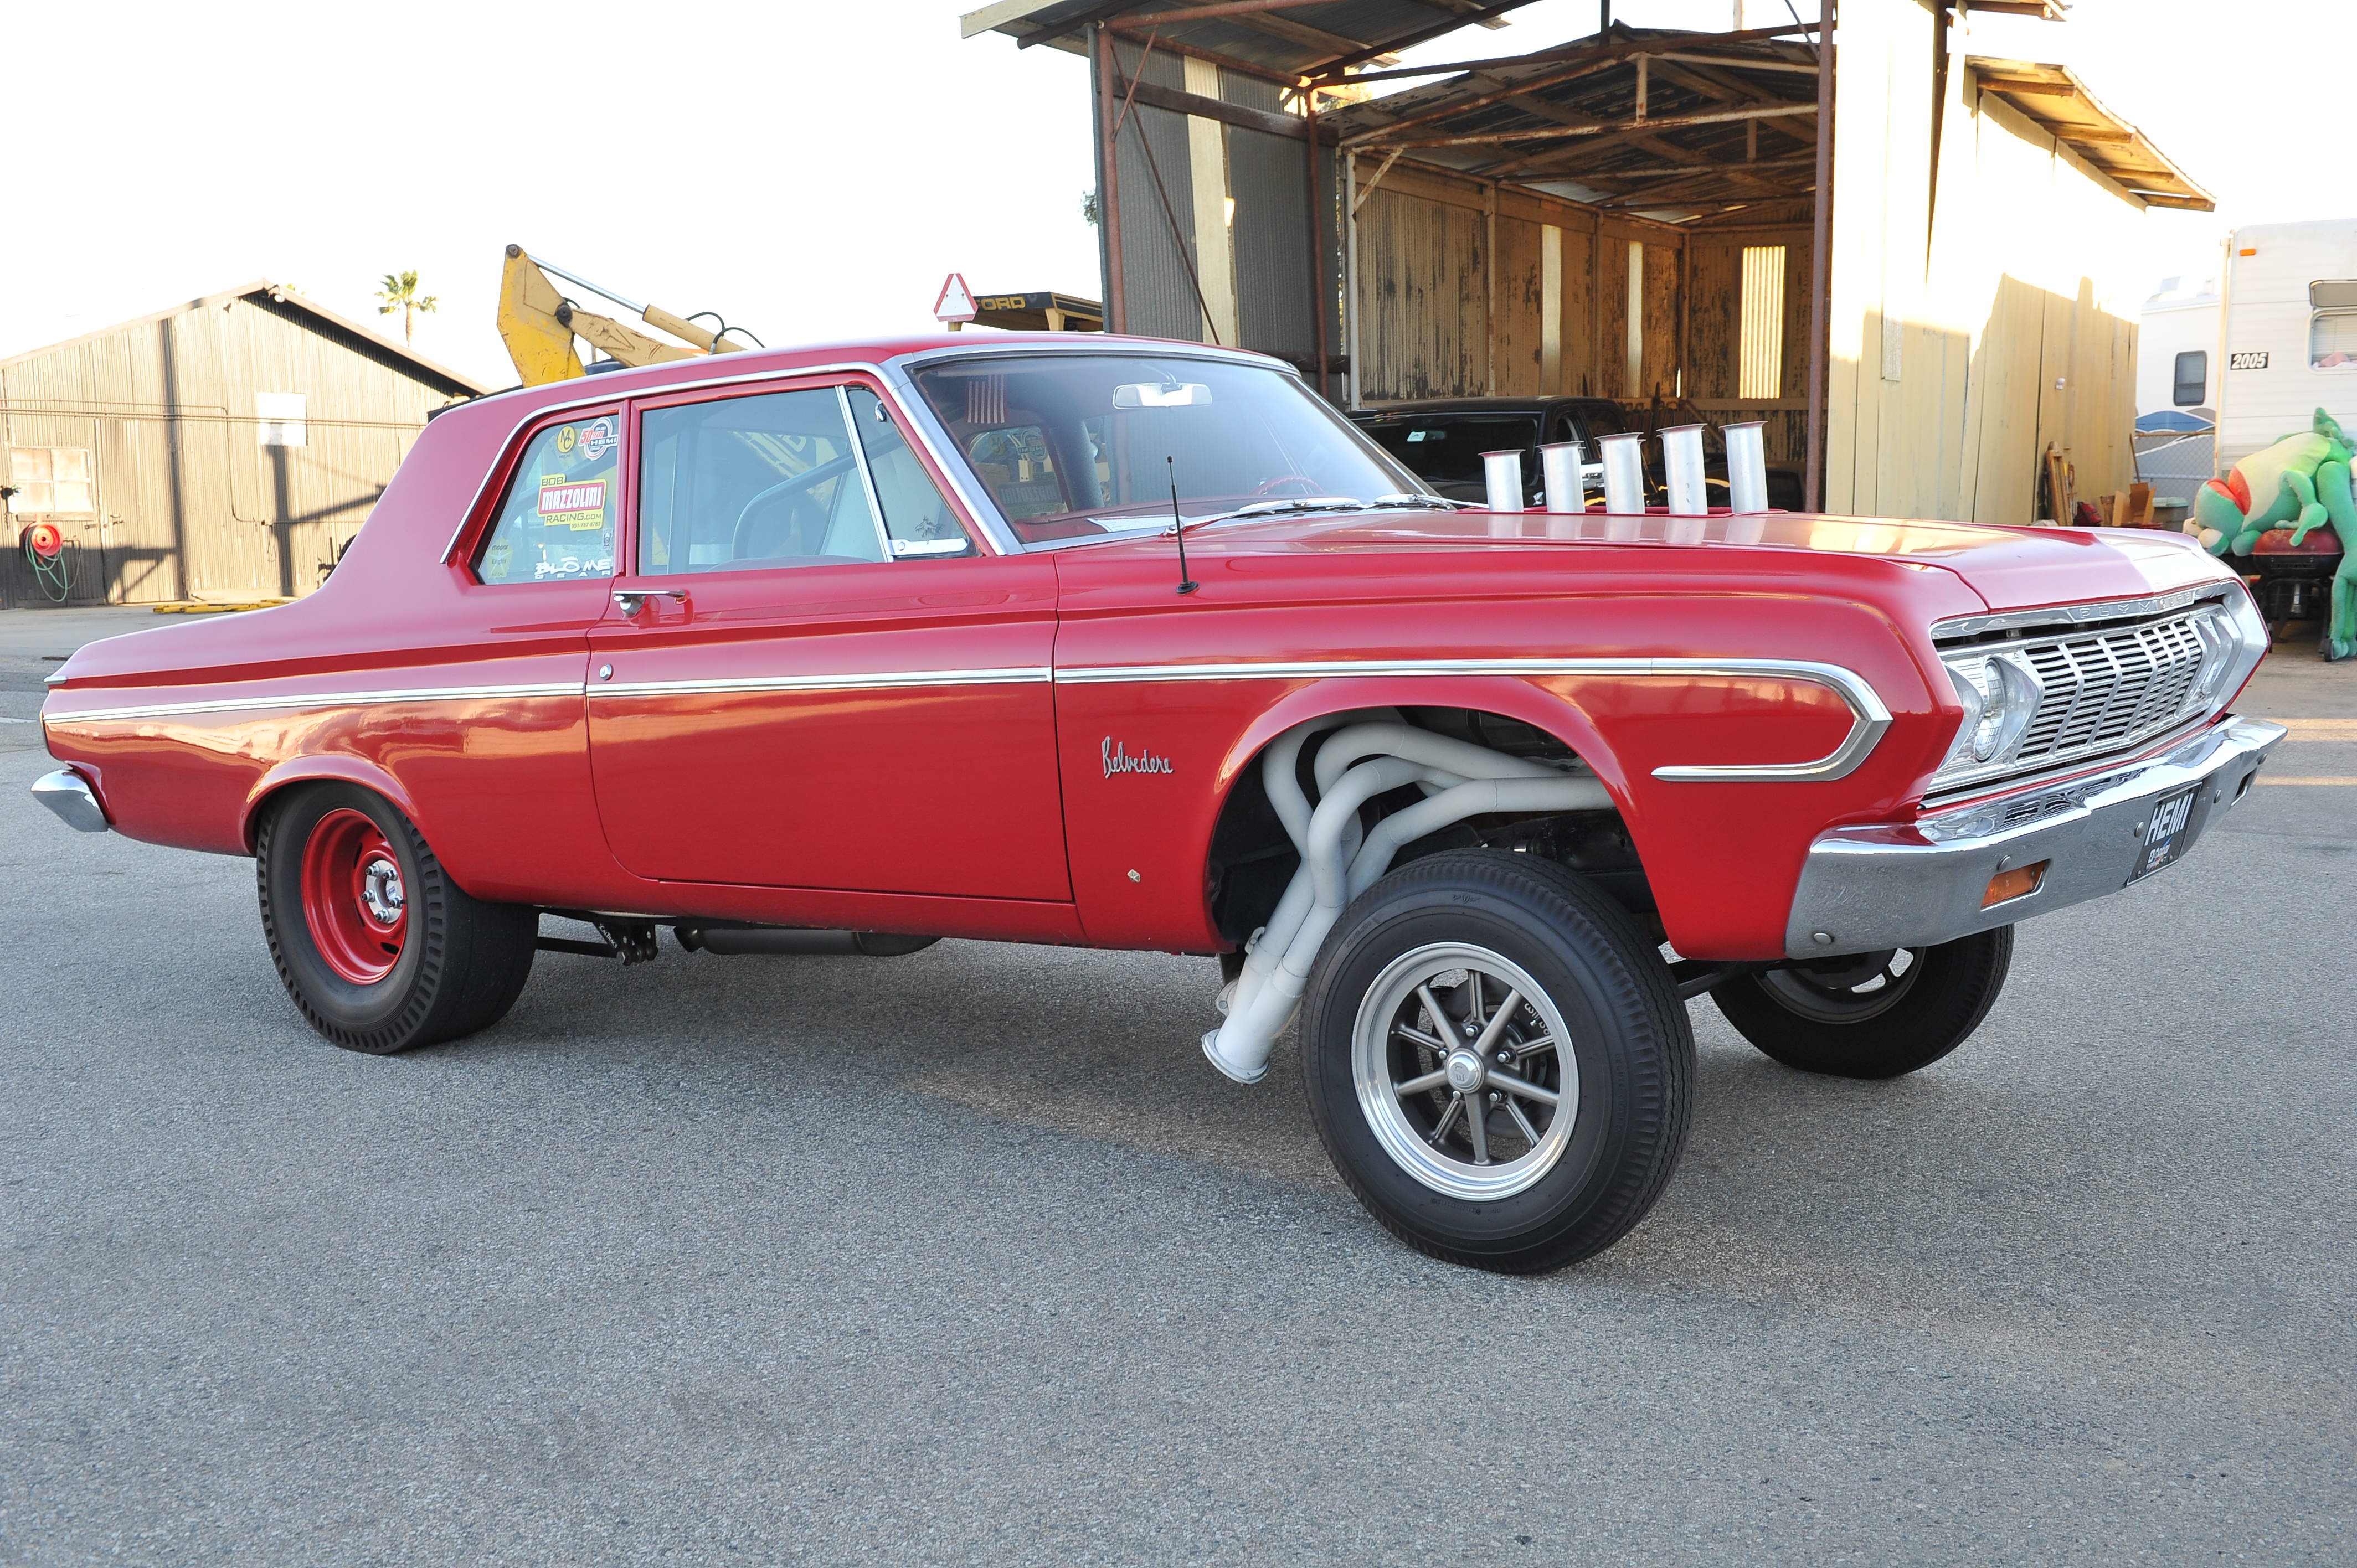 Steve's 1964 Plymouth Image 2